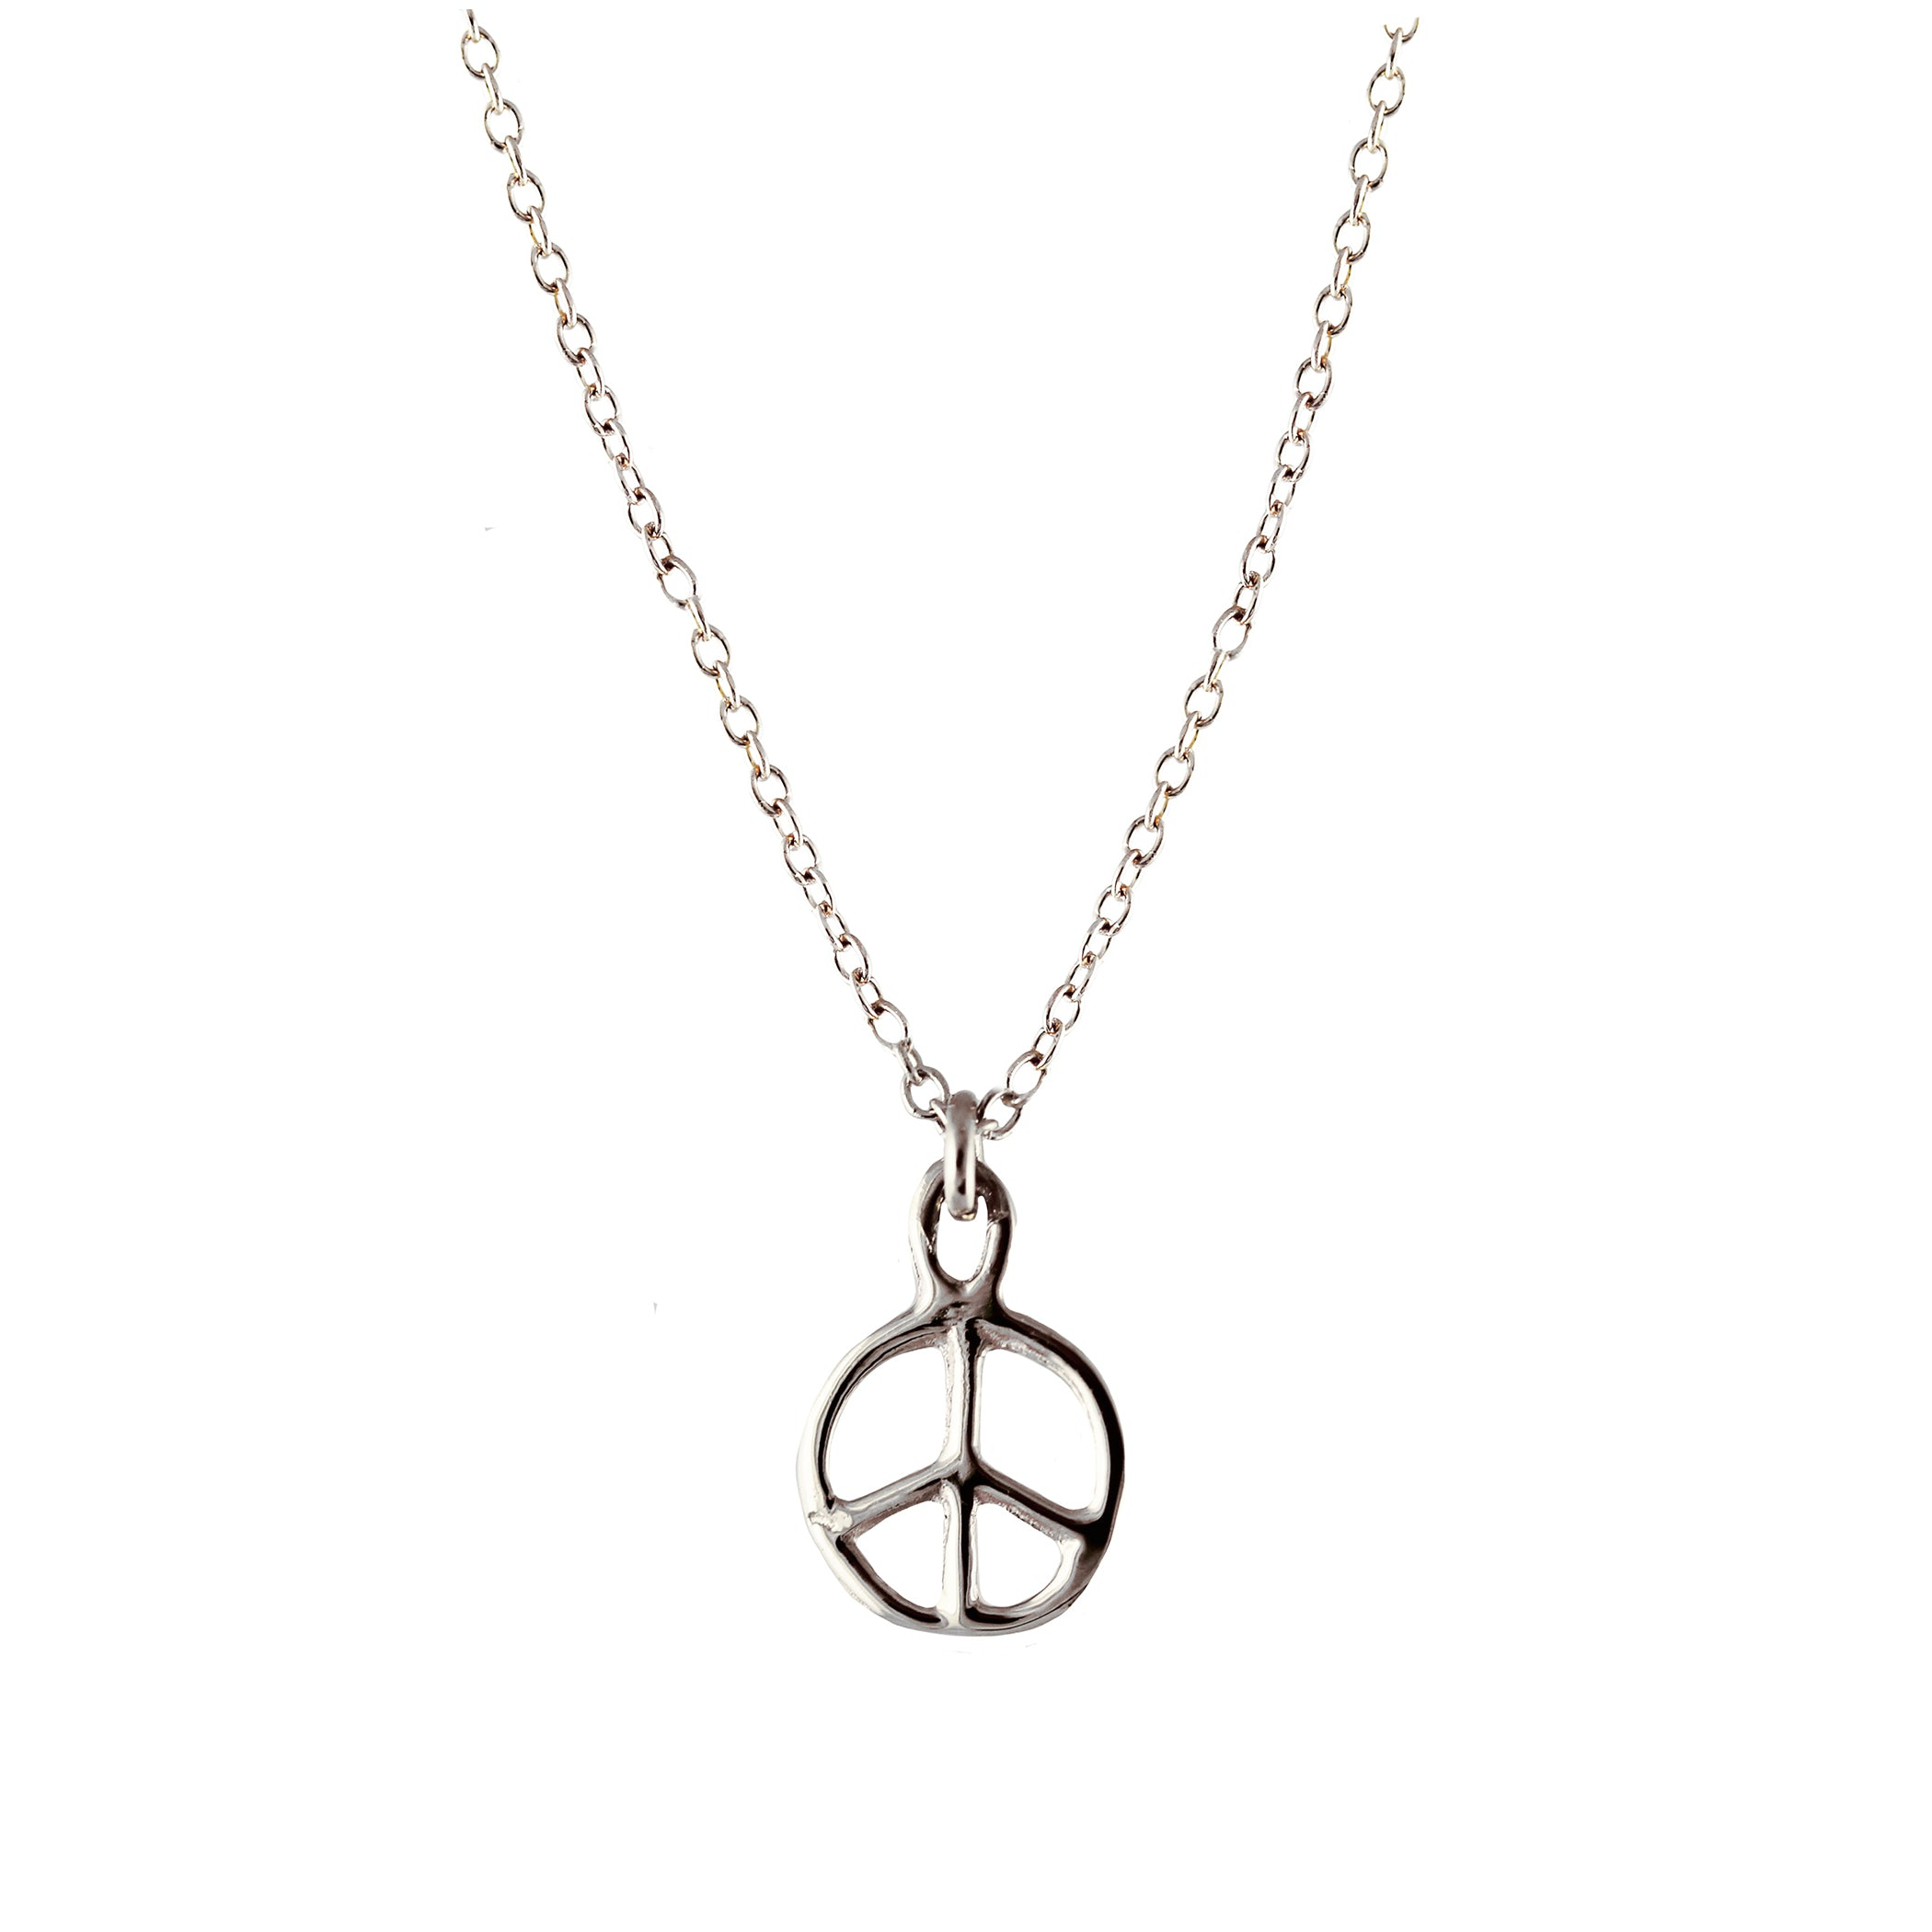 brushed collections heart metal necklace all and handcrafted peace products spinningdaisy pendant